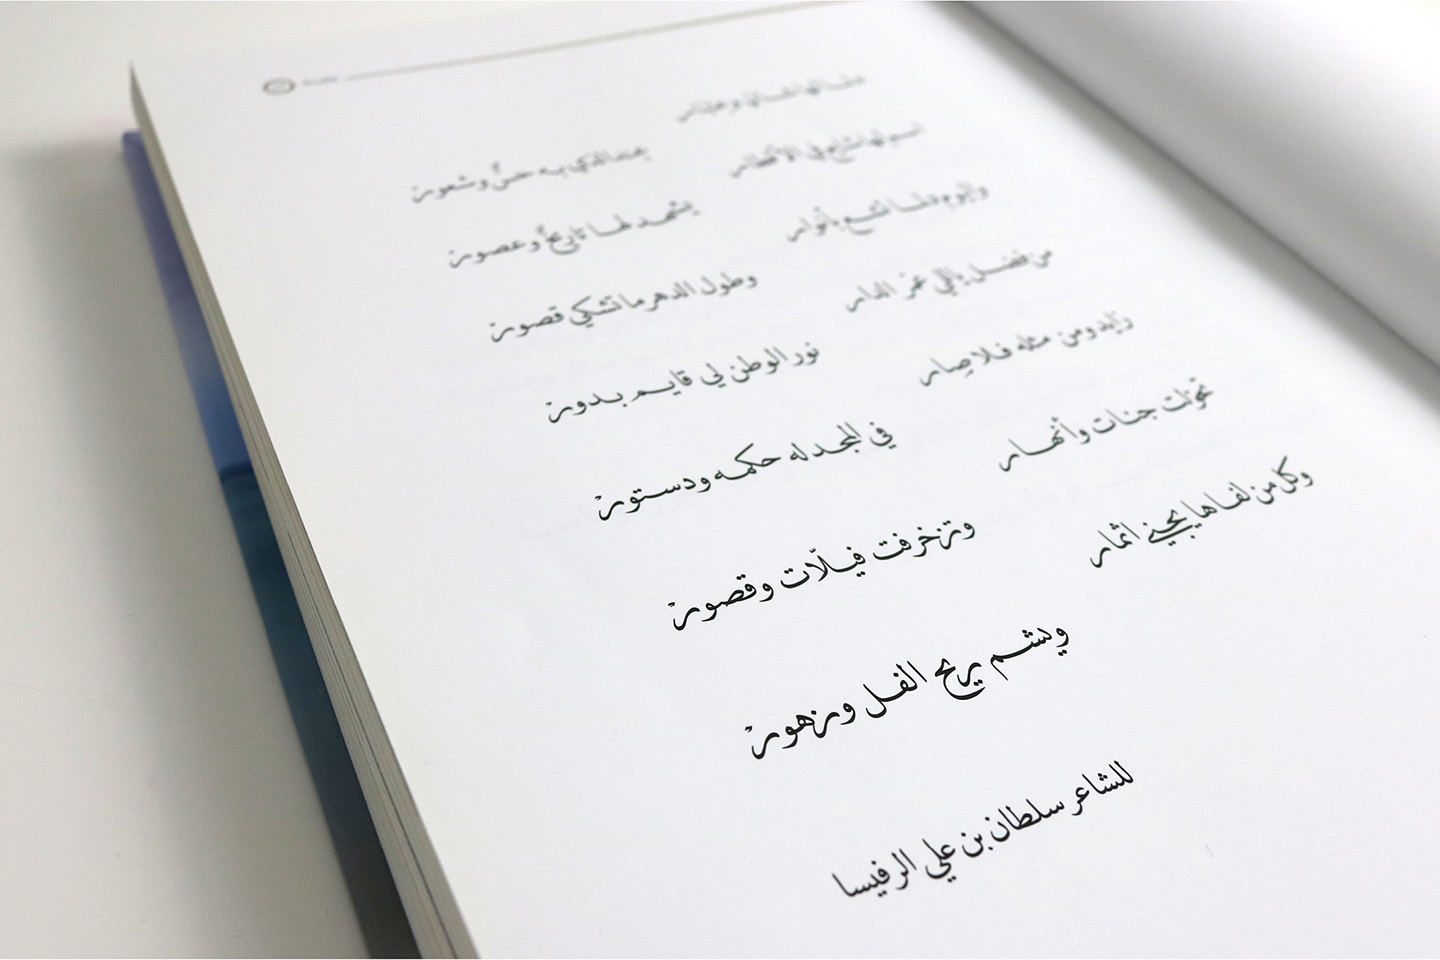 Opening Spread showing DecoType Naskh